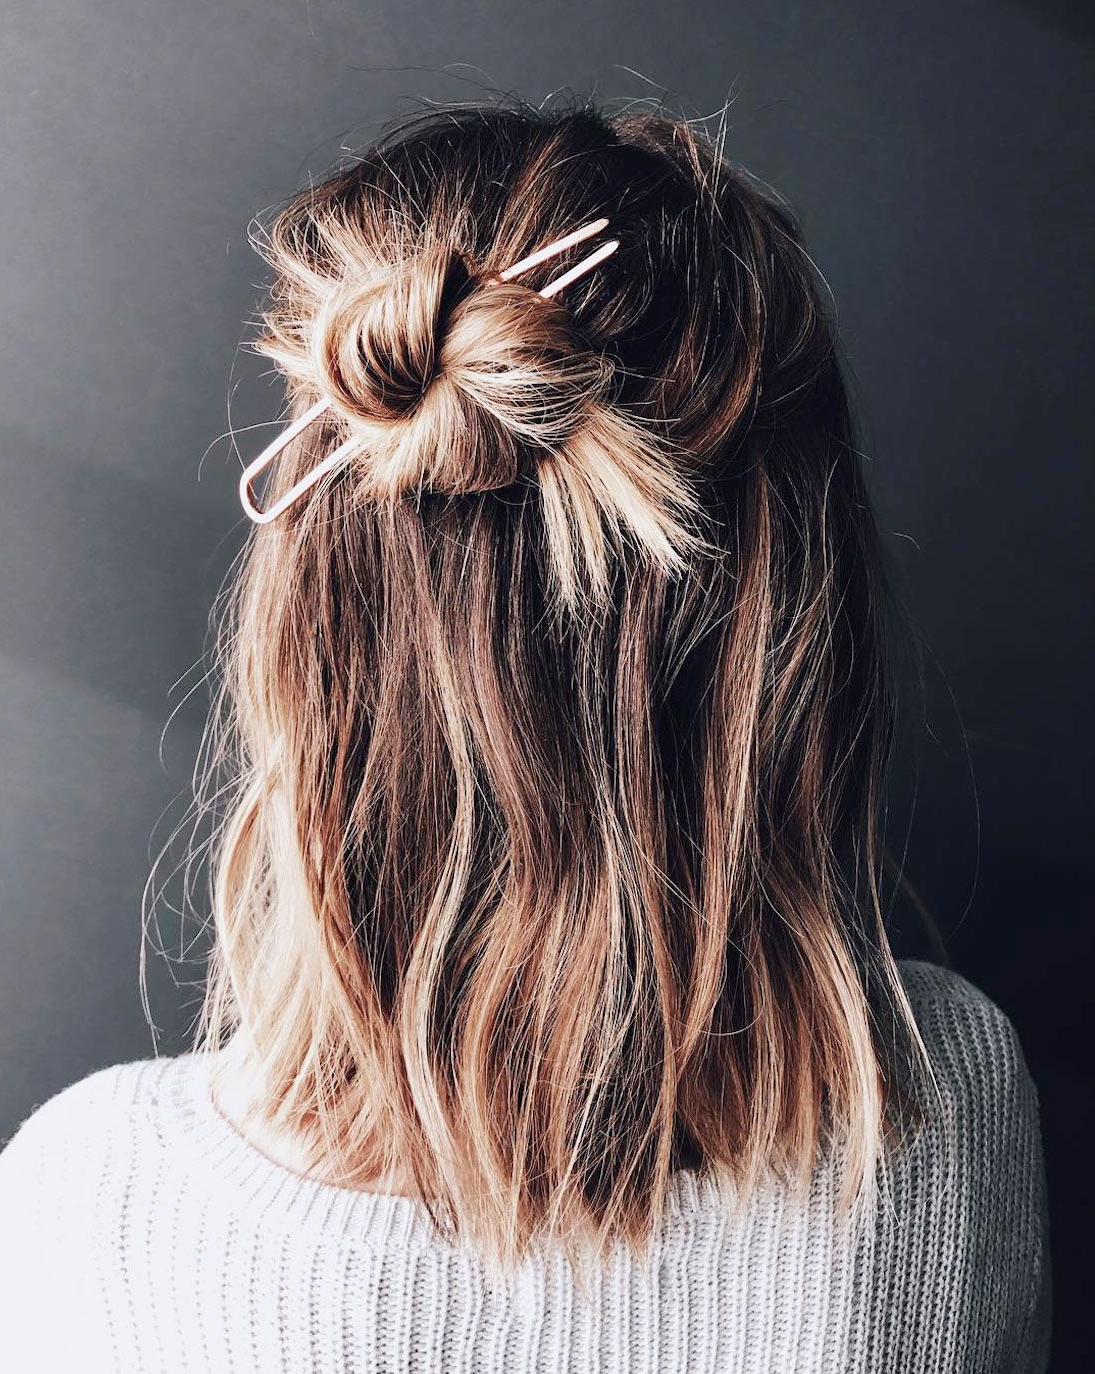 16 Half Bun Hairstyles For 2019 – How To Do A Half Bun Tutorial Intended For Newest Topknot Hairstyles With Mini Braid (Gallery 9 of 20)